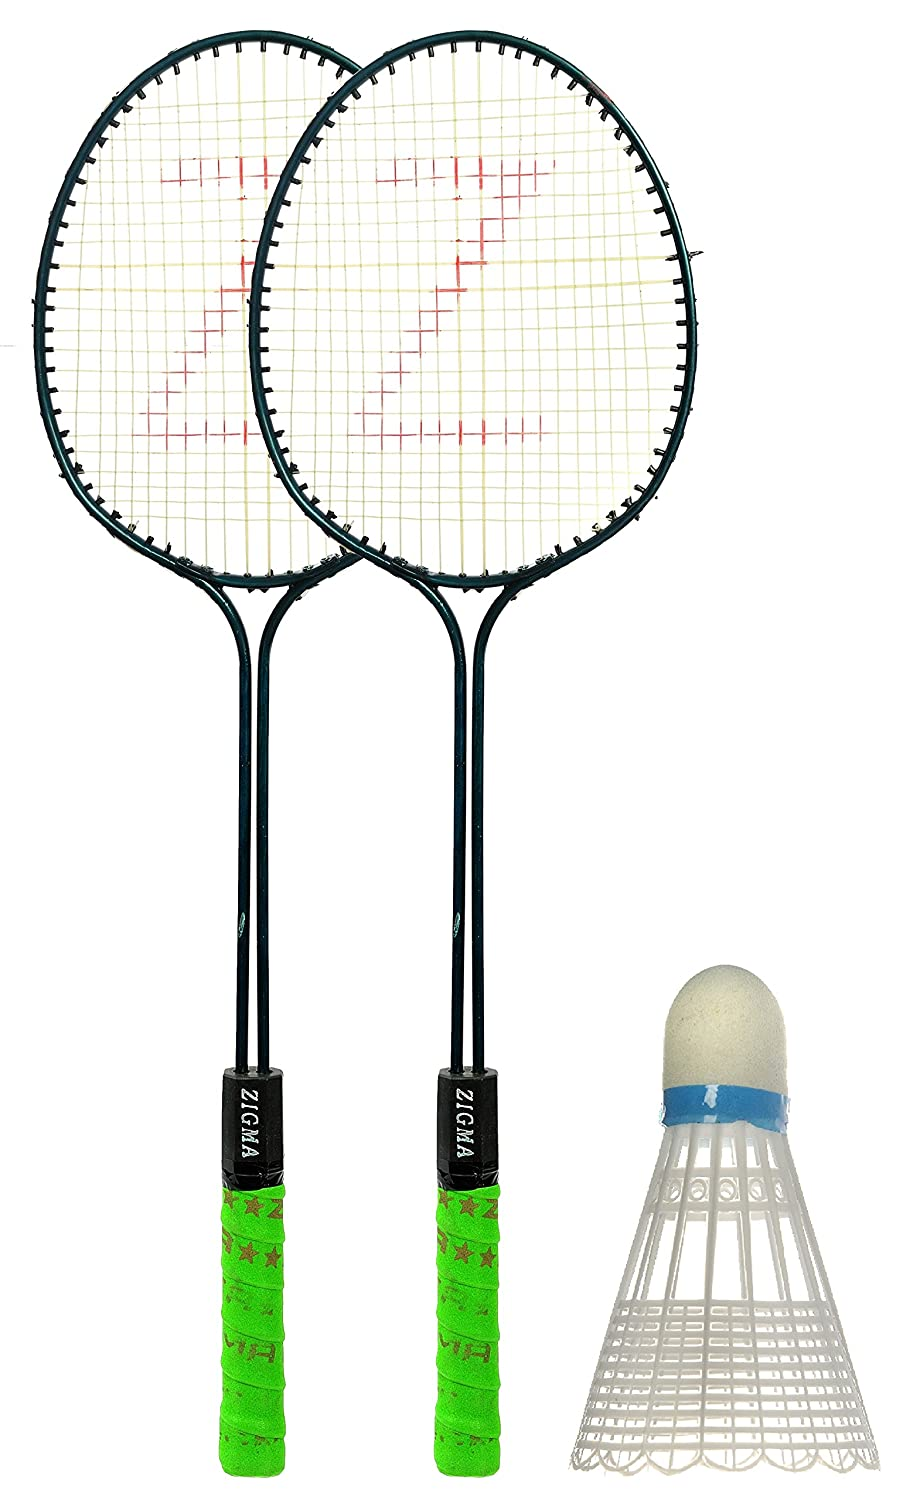 Buy Klapp Badminton Set Pack Of Two Racquet And 1 Shuttlecock Bri Jbl Xtreme Blue Online At Low Prices In India